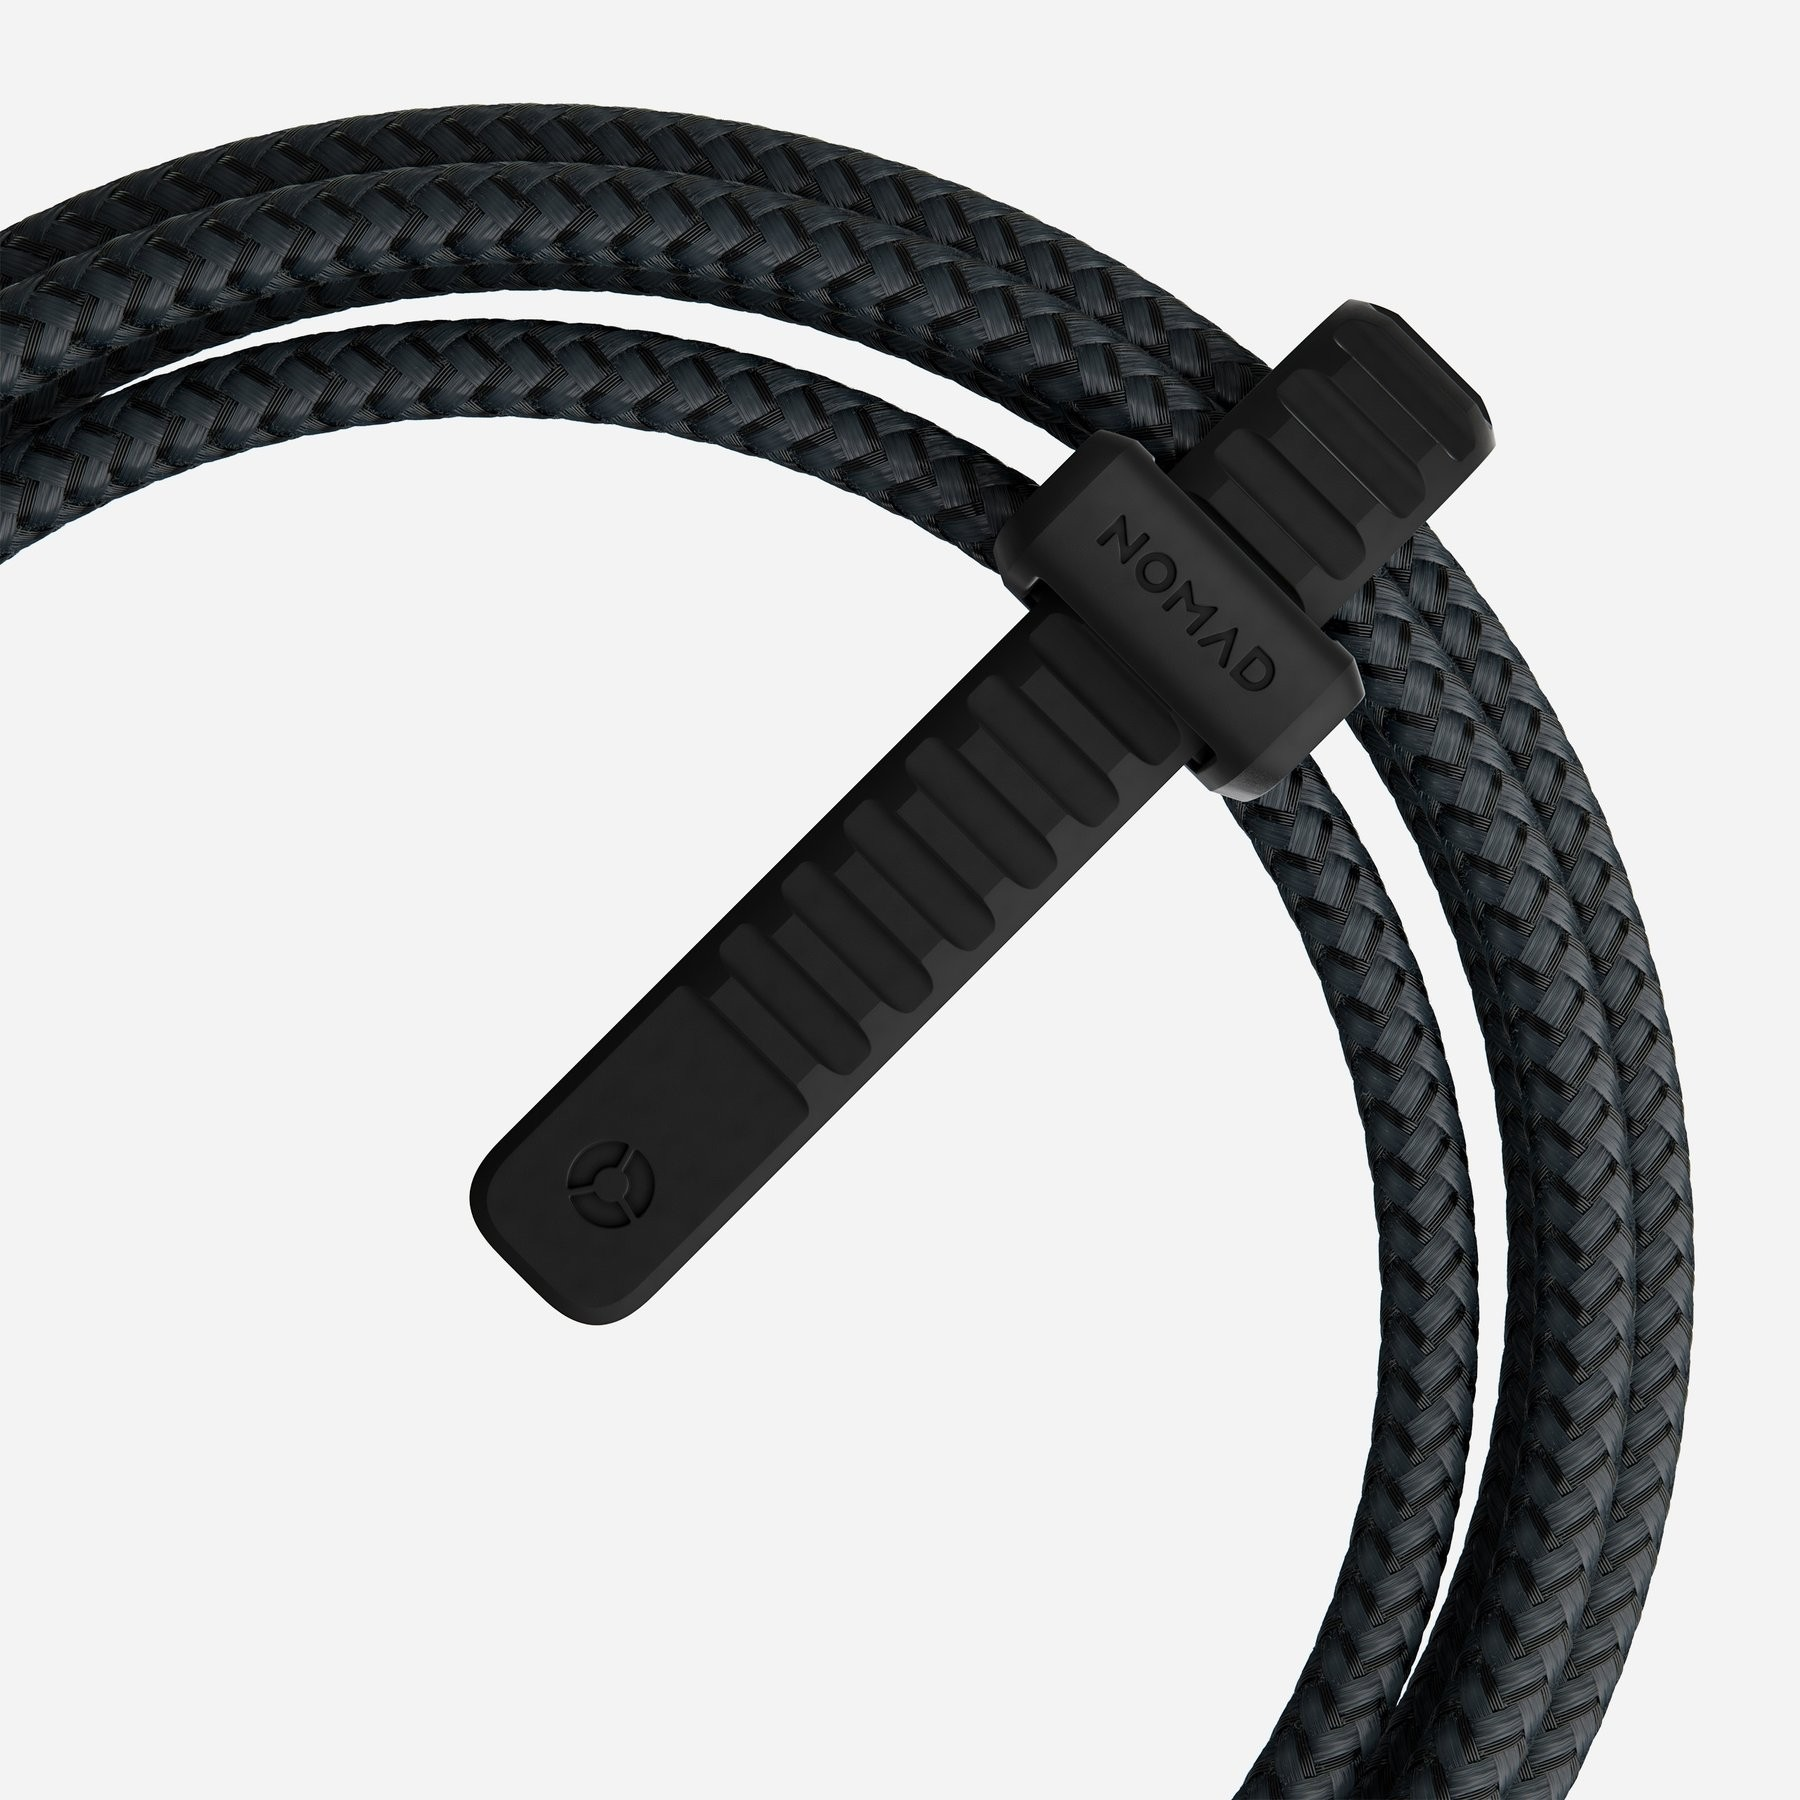 Nomad - Lightning Cable with Kevlar - 1.5m, NM01911010